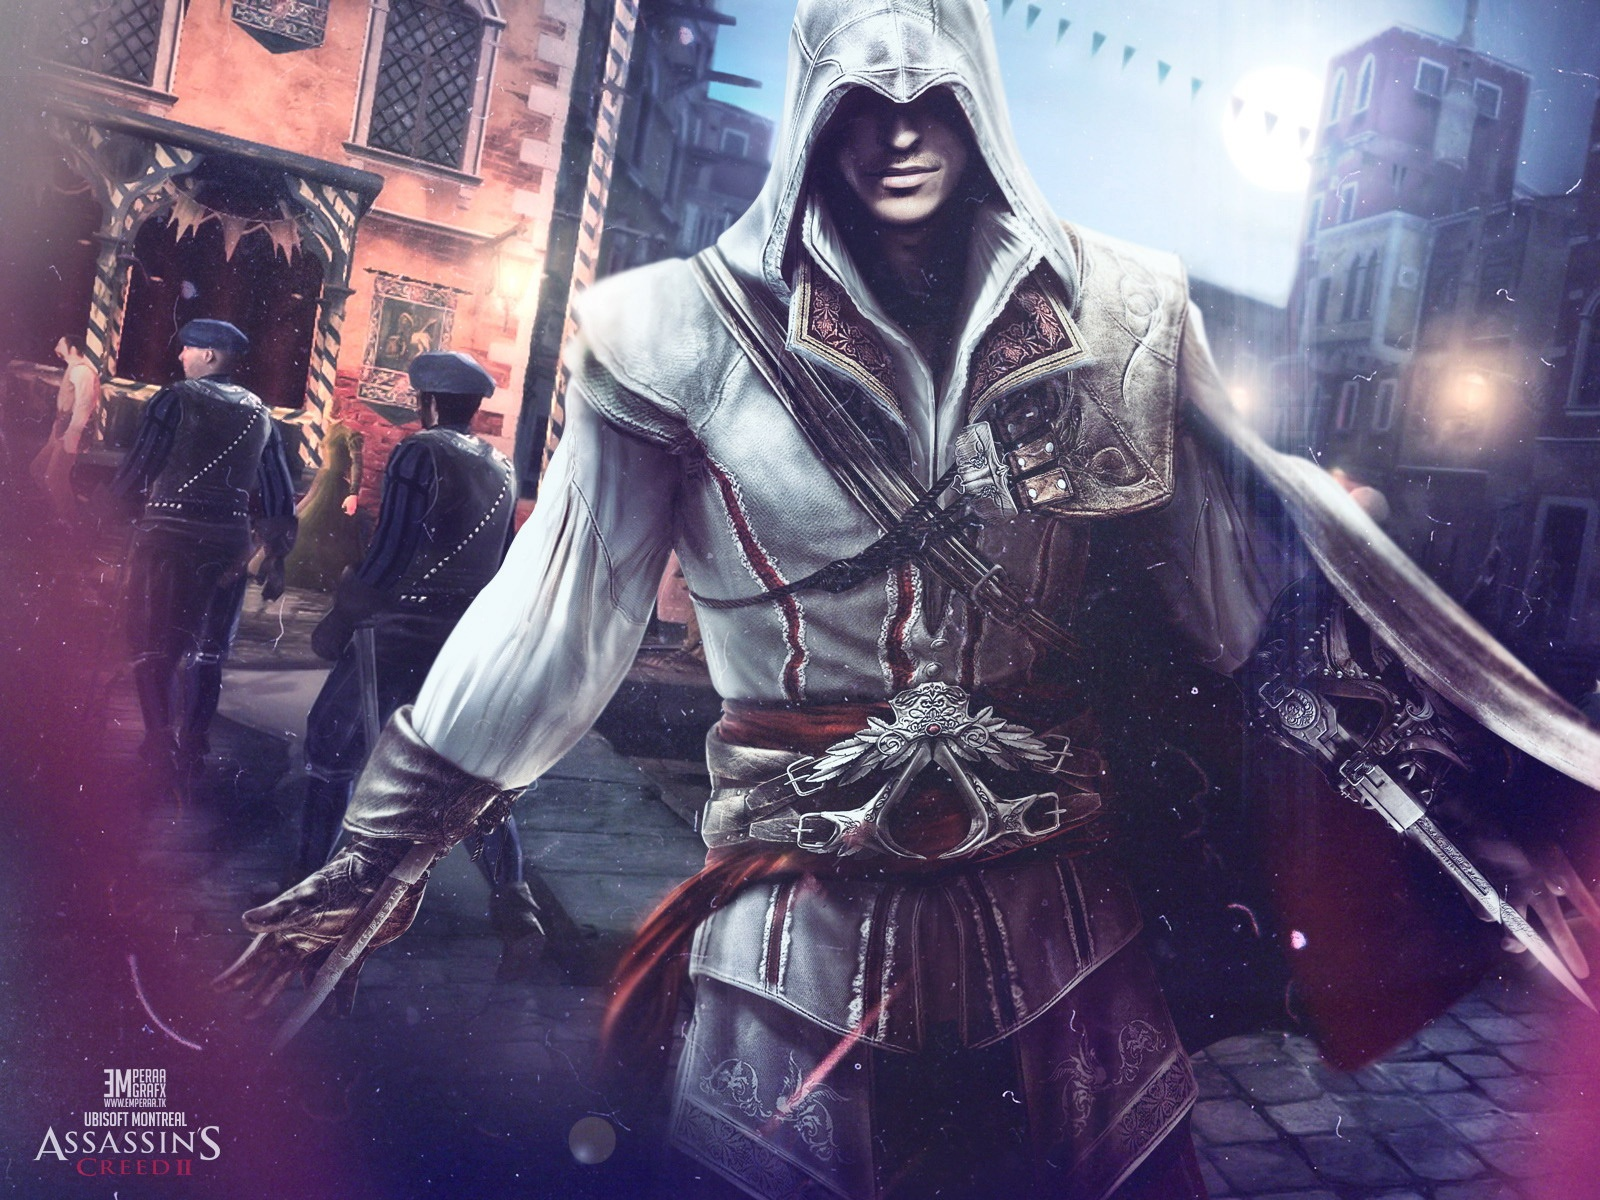 Assassins Creed Wallpapers Wallpaperholic 1600x1200